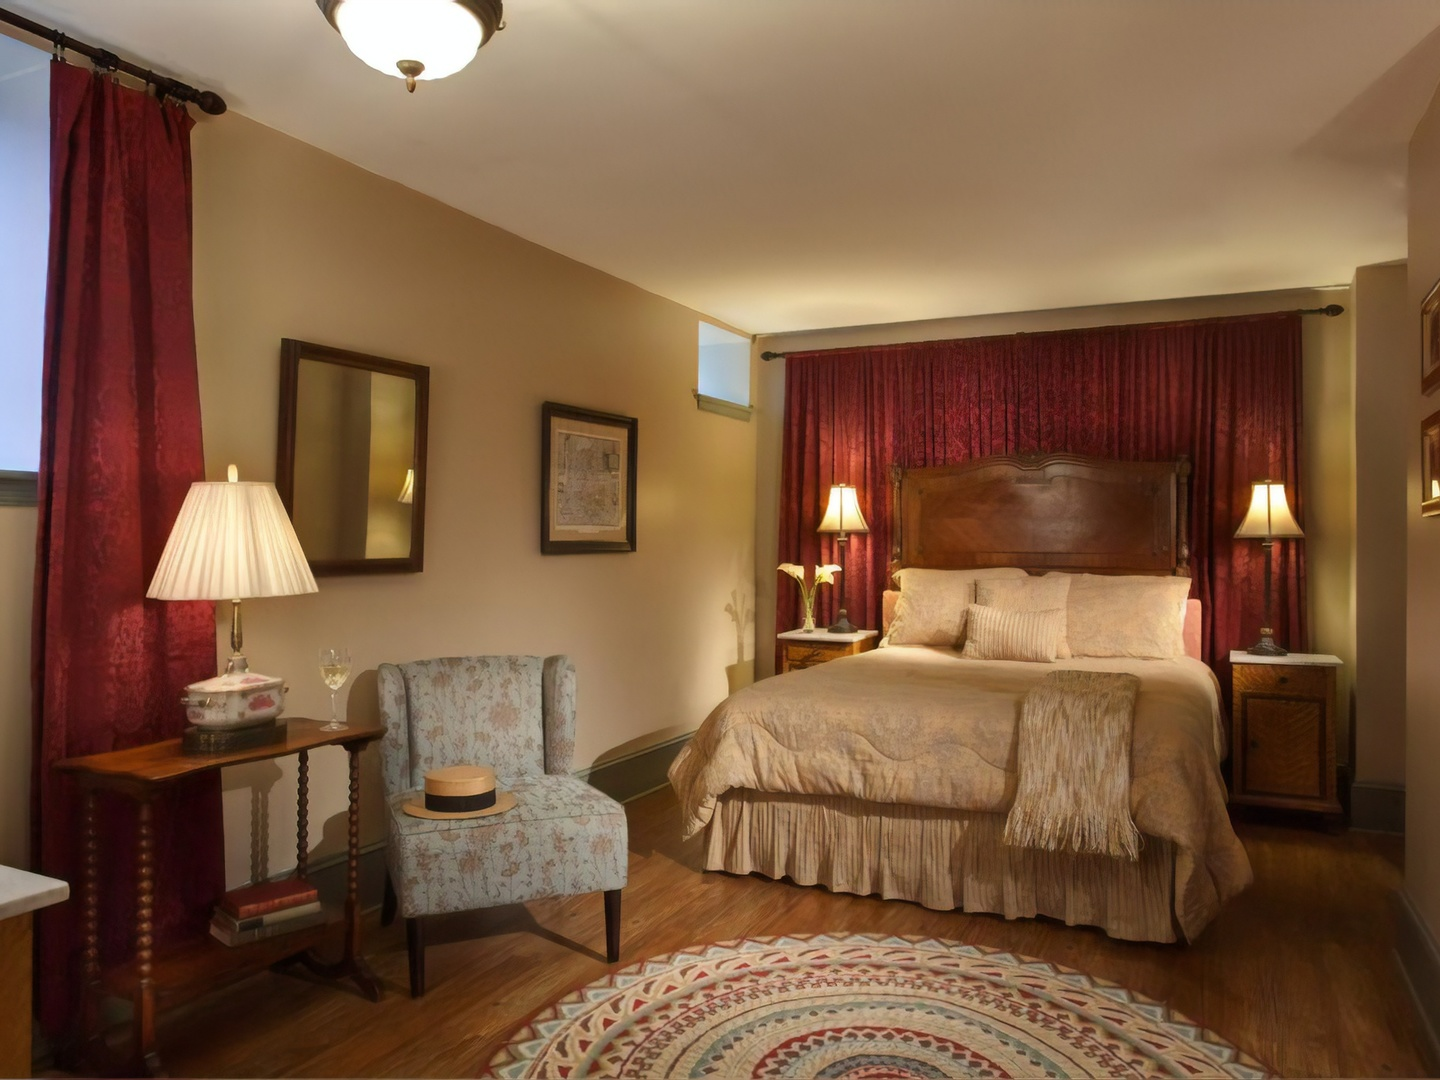 A bedroom with a large bed in a hotel room at Lafayette Inn.